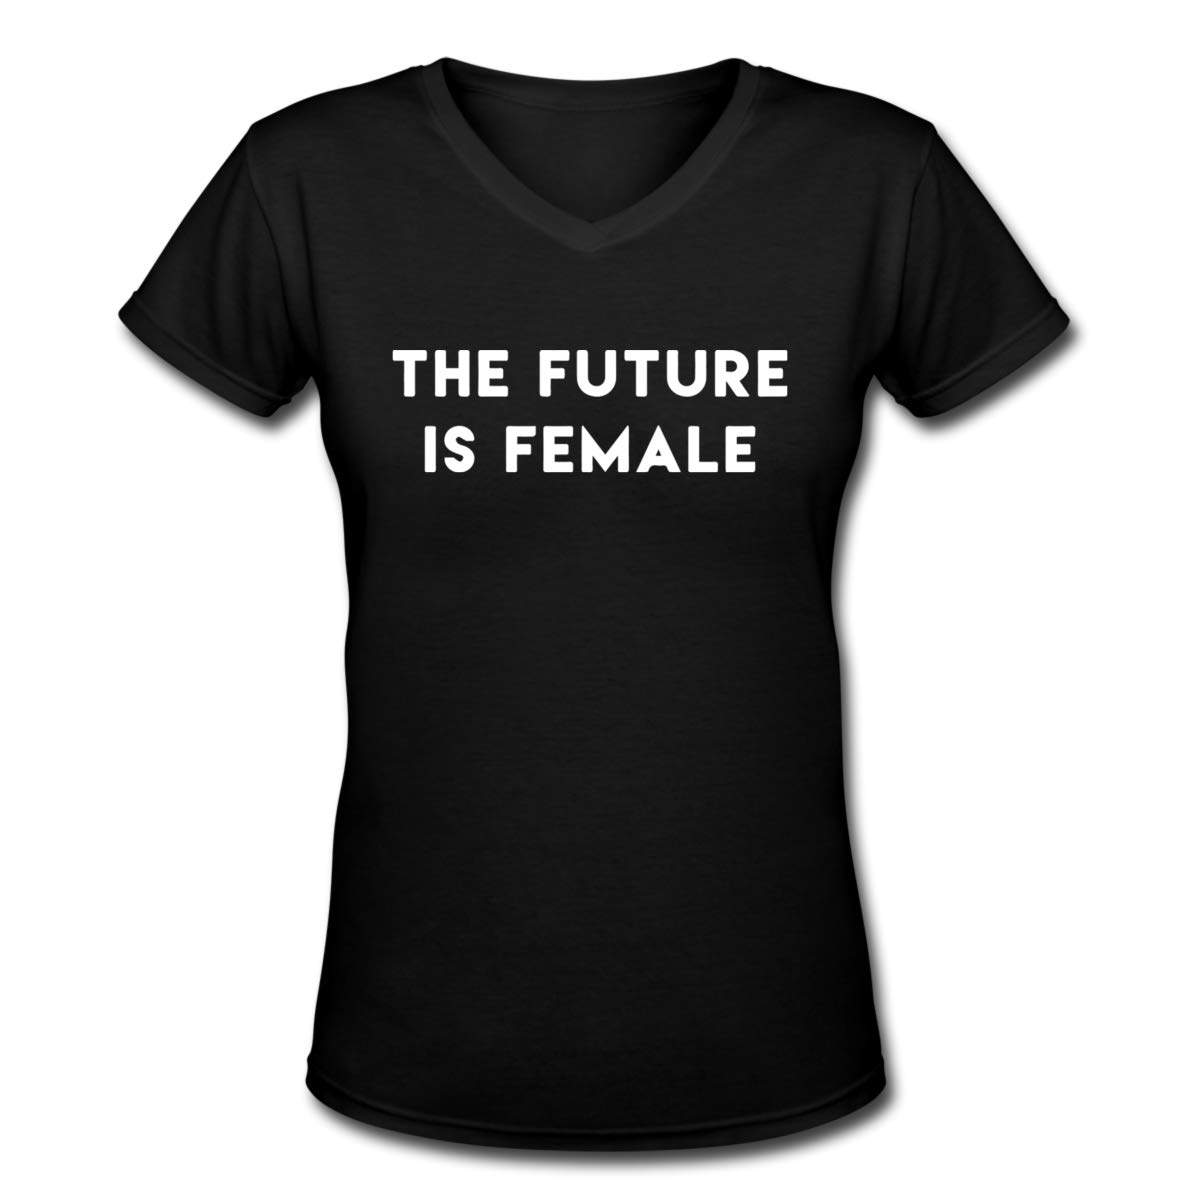 Women's T Shirt The Future is Female Tee Shirts Cotton T-Shirt Short-Sleeve V Neck Crop Top for Women Youth Girls Black XXL by BKashy